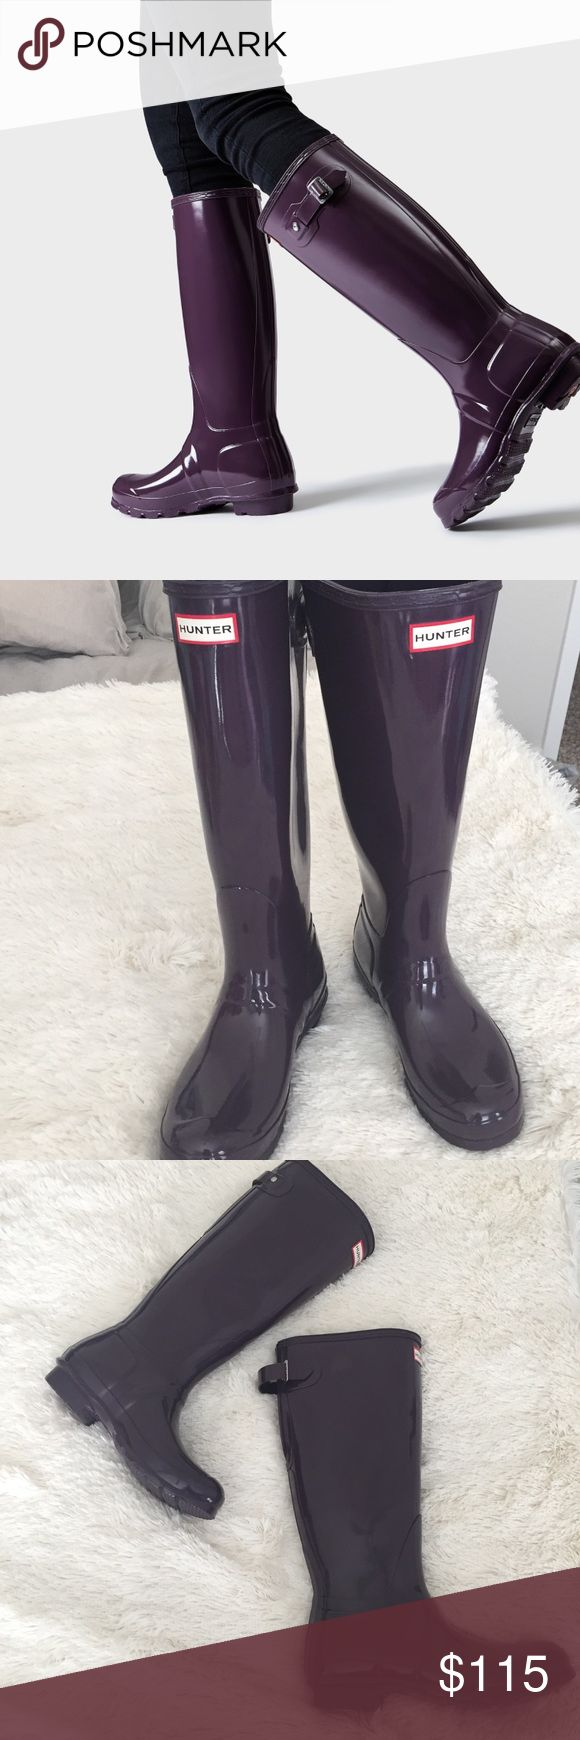 Authentic Tall Hunter Rain boots Purchased at Lord & Taylor and worn once very briefly. In excellent condition and a beautiful dark purple, glossy color. US size 9, but runs big, as is typical of Hunter. Hunter Shoes Winter & Rain Boots